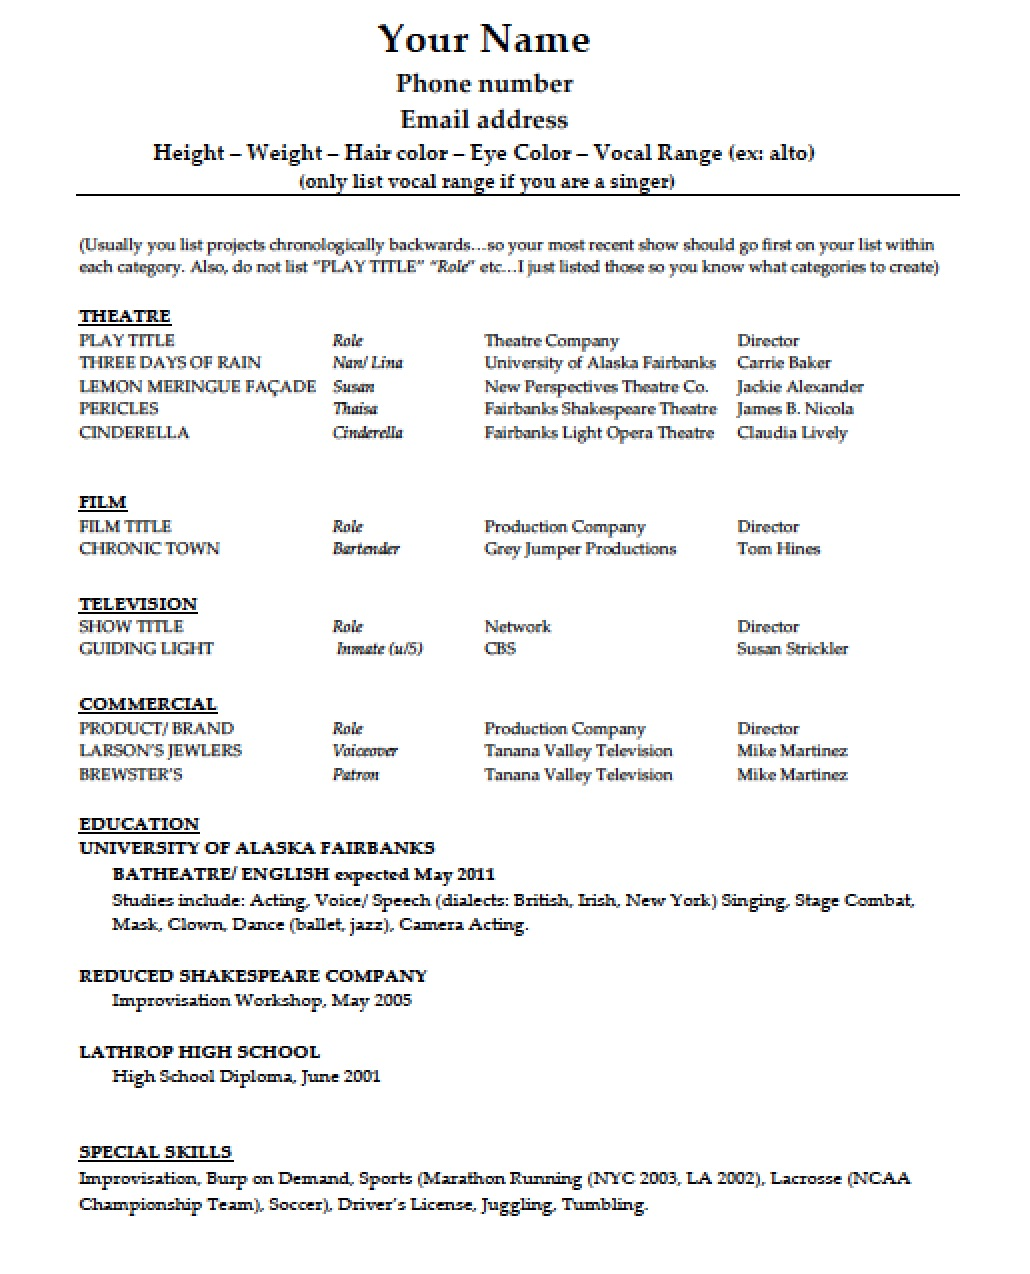 Download Acting Résumé Template  Pdf  Word Wikidownload. Ways To Be Successful Template. Joint Venture Partnership Agreement Template. Basic Job Application Template. Valentines Day Cards Download Template. Sdsu Appeal Letter. Weekly Management Report Template. Funeral Template. Skills To Put On Resume For Students Template